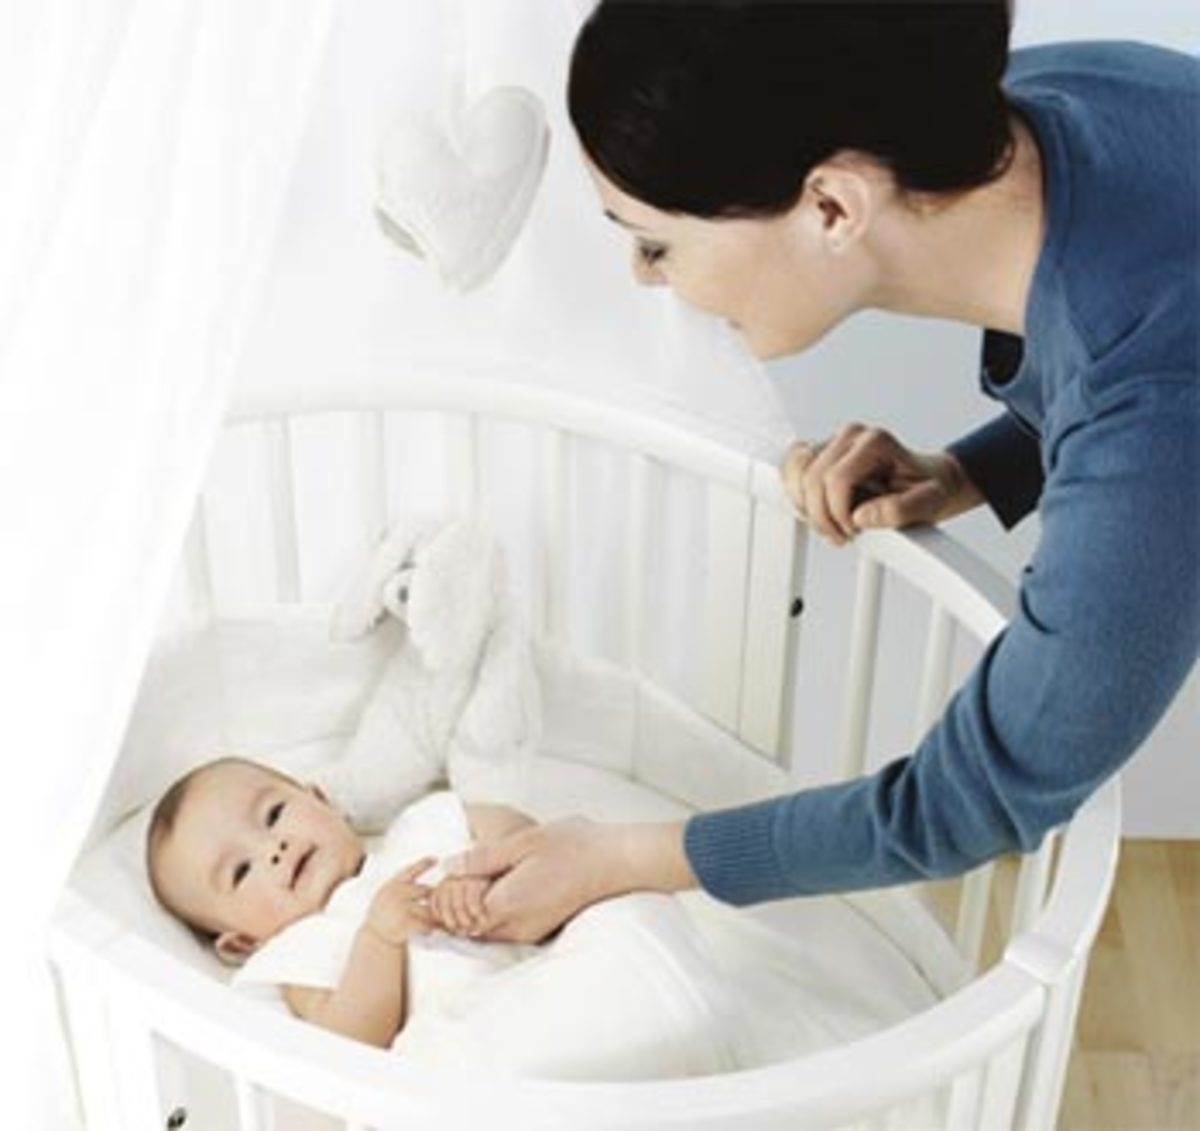 Put Your Children to Sleep On Non-Toxic Baby Mattresses - Organic Authority